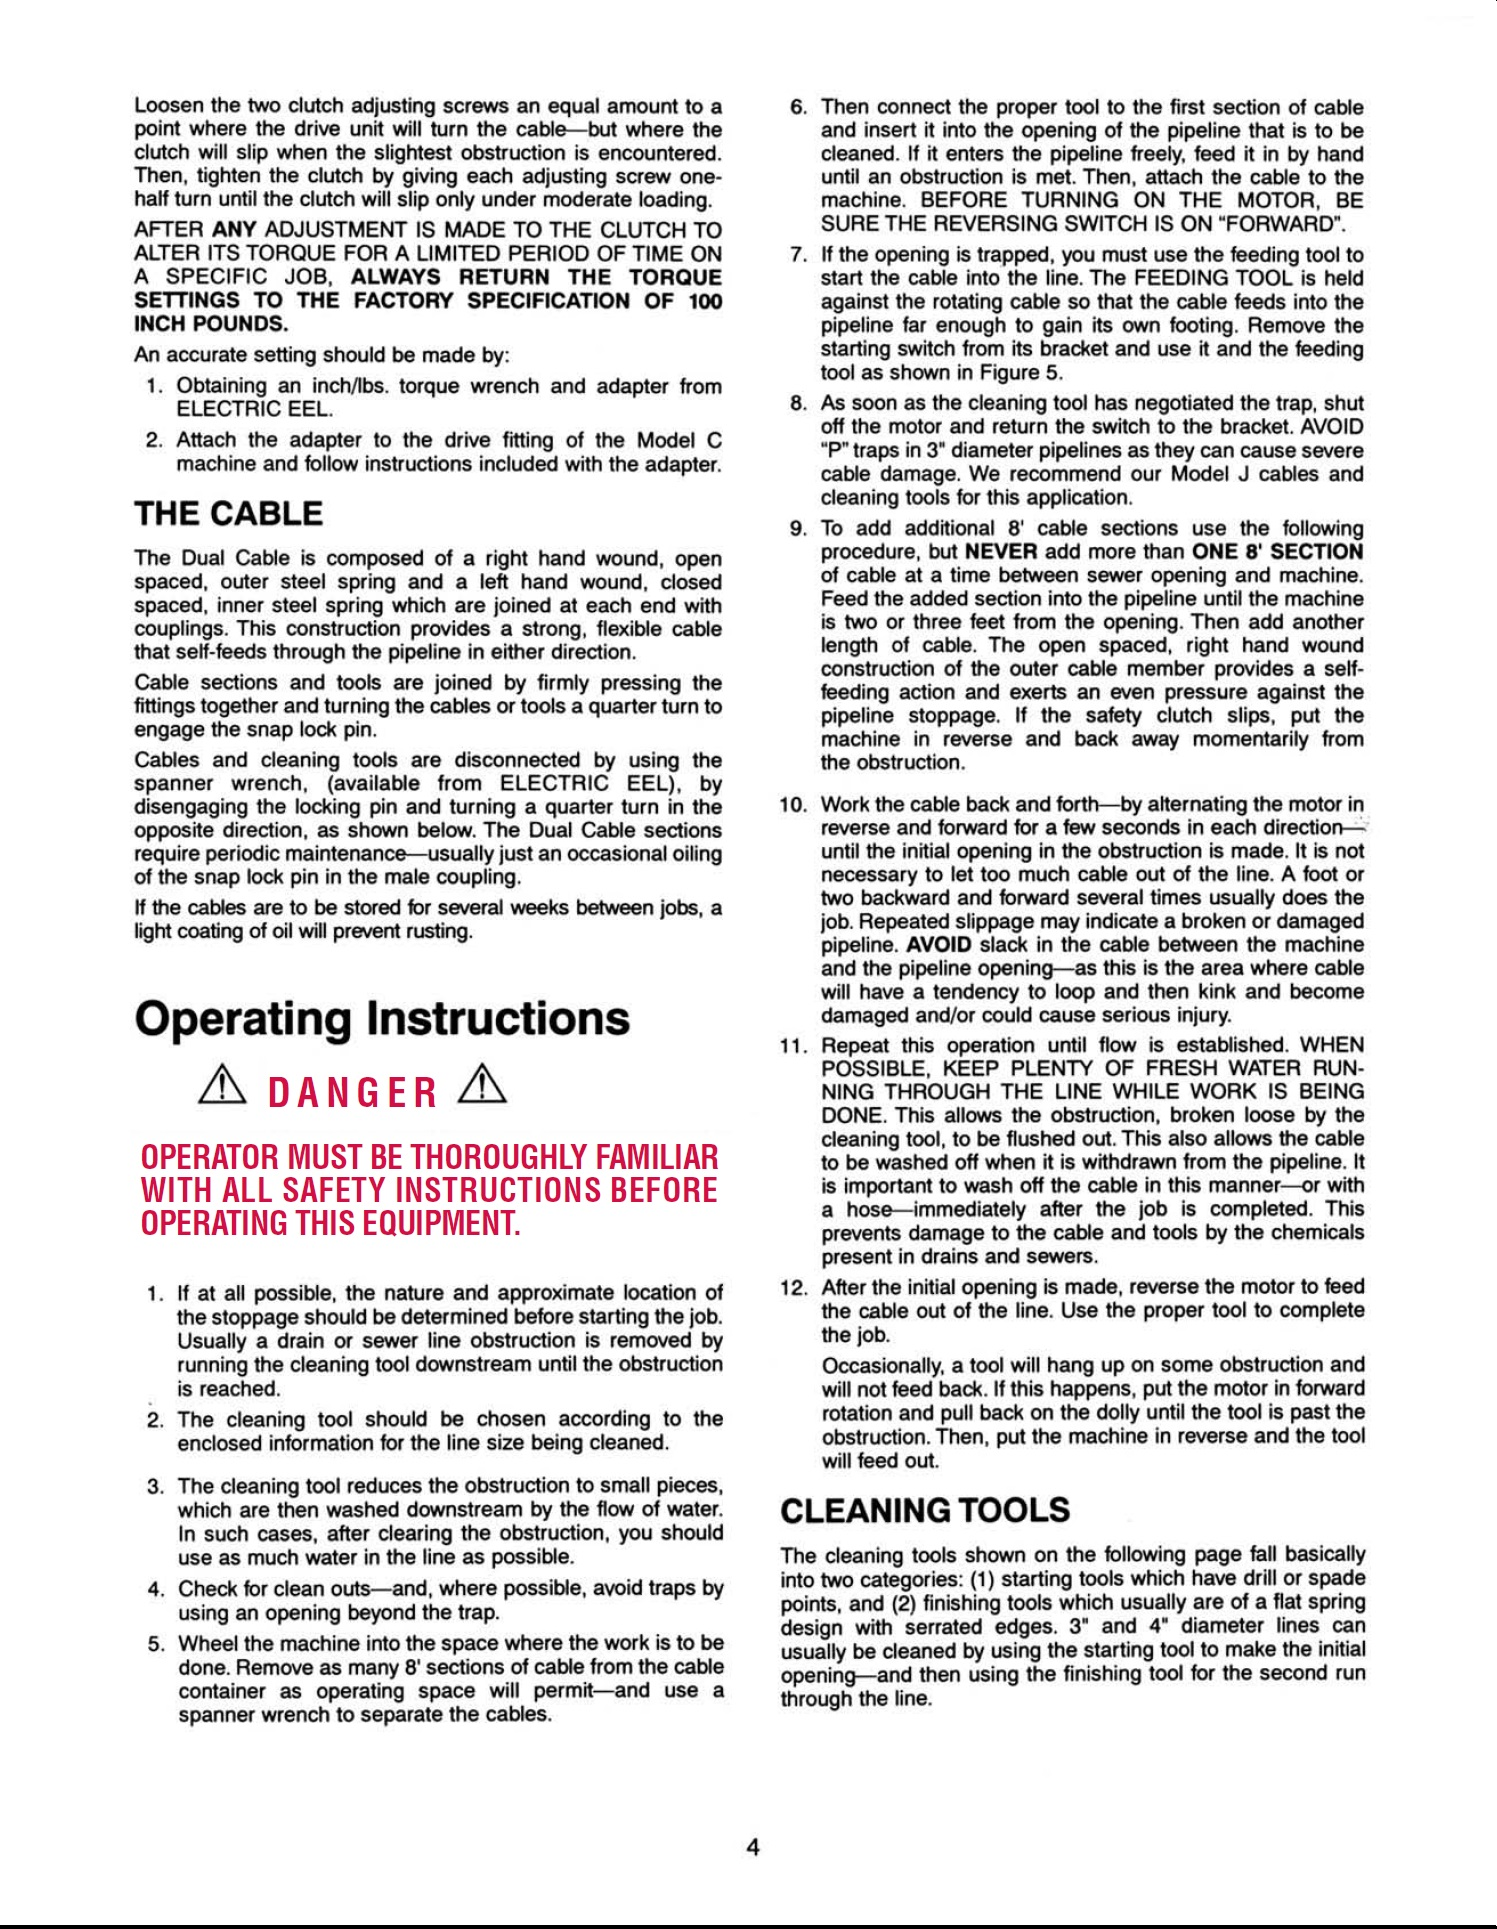 model-c-operating-manual-page-4.jpg